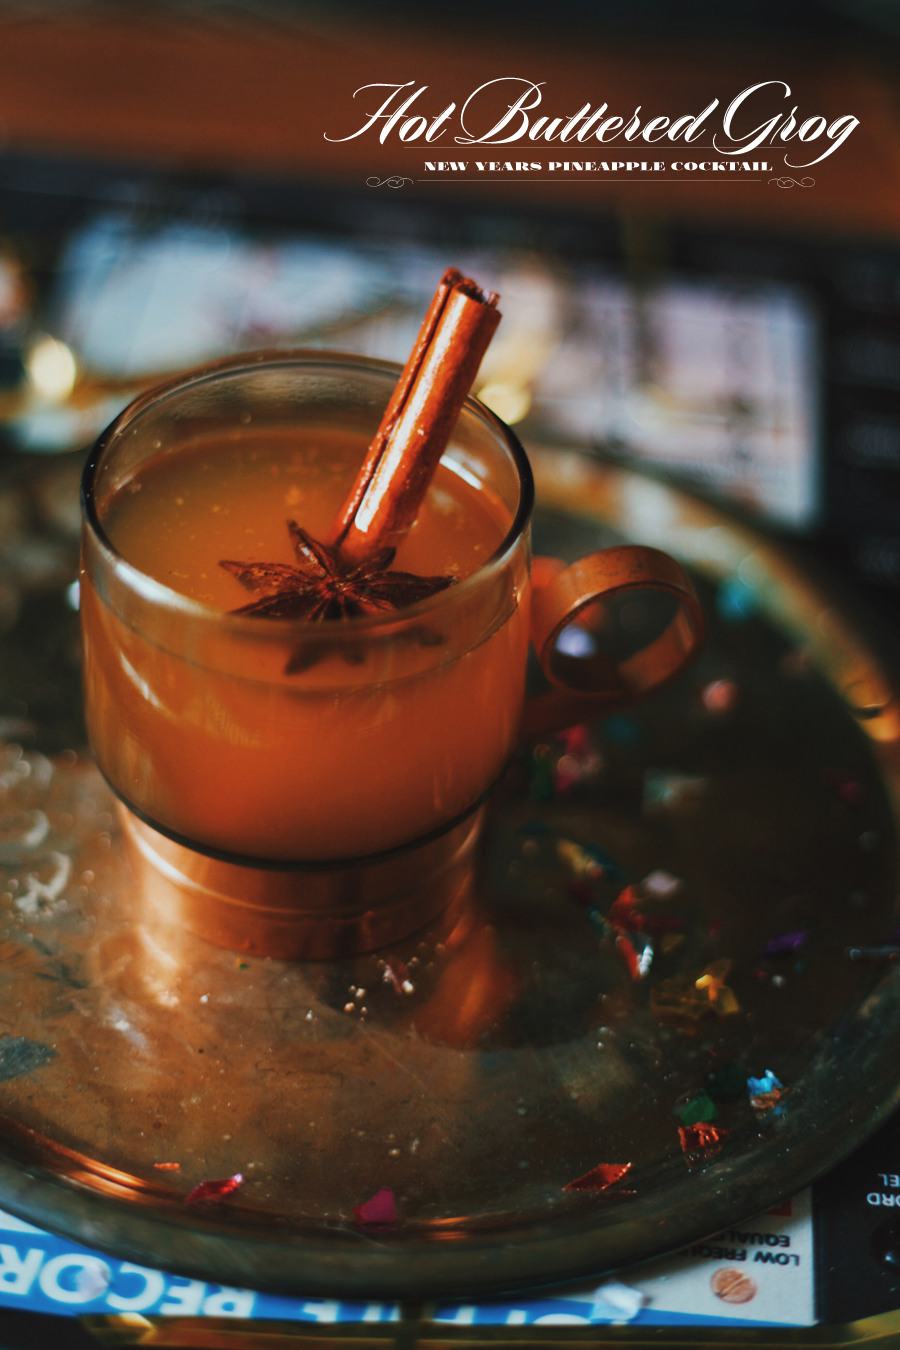 Hot Buttered Grog | New Years Cocktails | Dine X Design